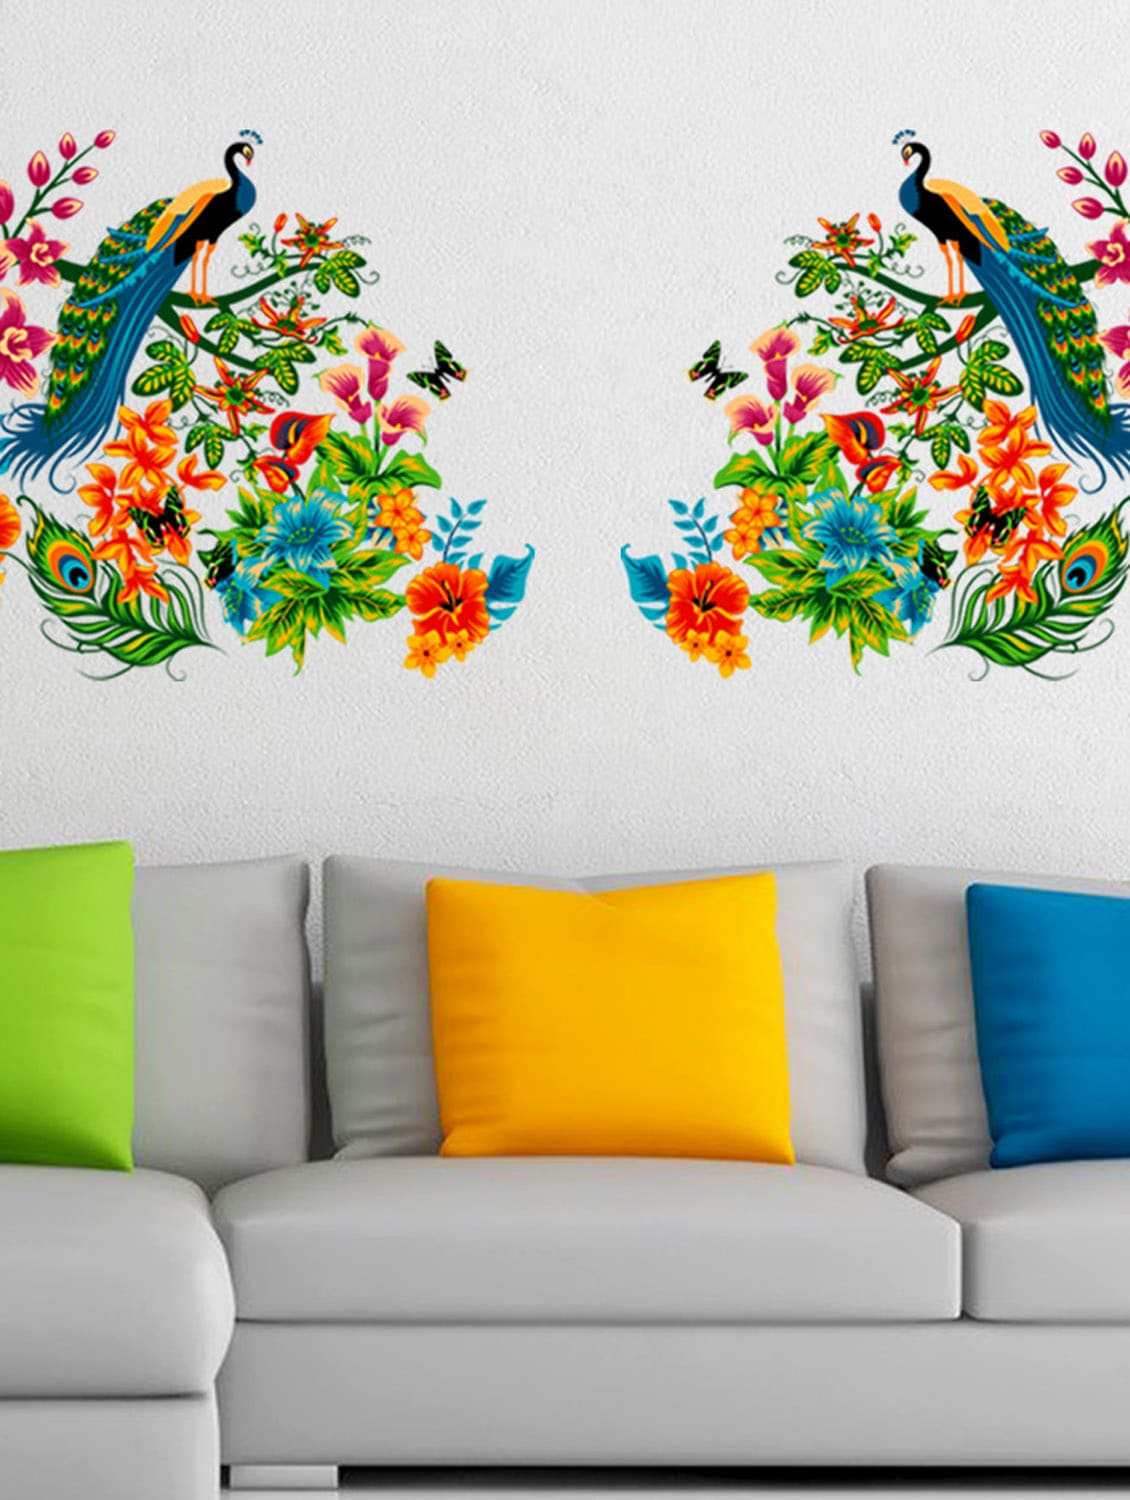 Buy Wall Stickers Peacock Birds On Colourful Branch Leaves Wall